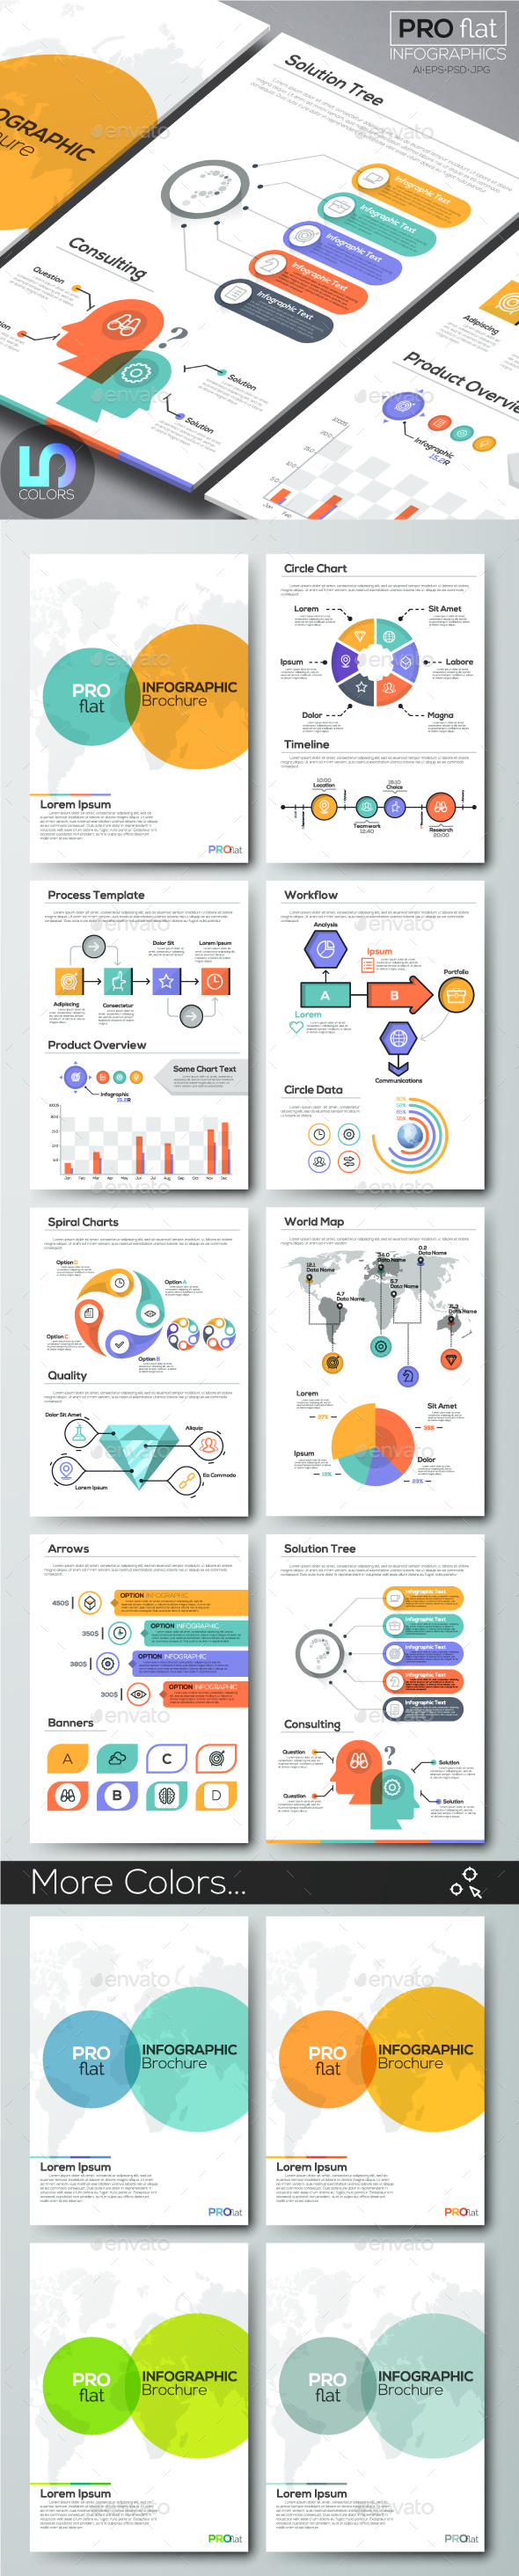 Pro Flat Infographic Brochure. Set 9 (5 Colors) - Infographics